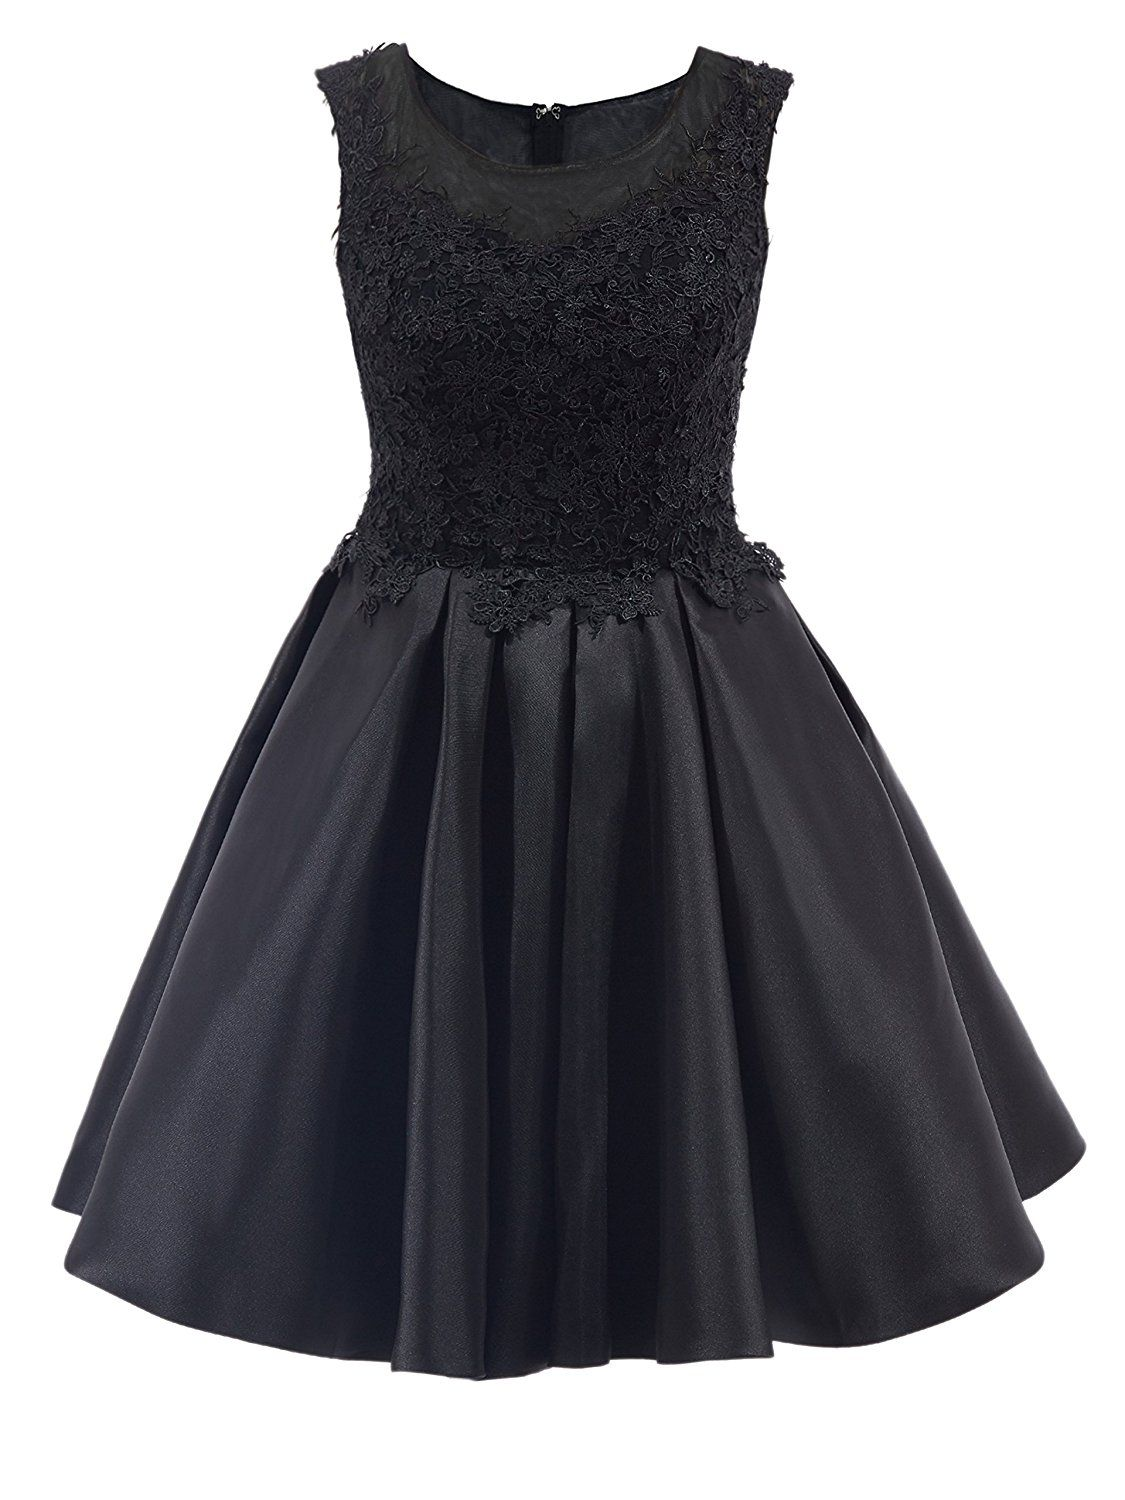 Tanpell womenus lace short applique homecoming party evening gown at